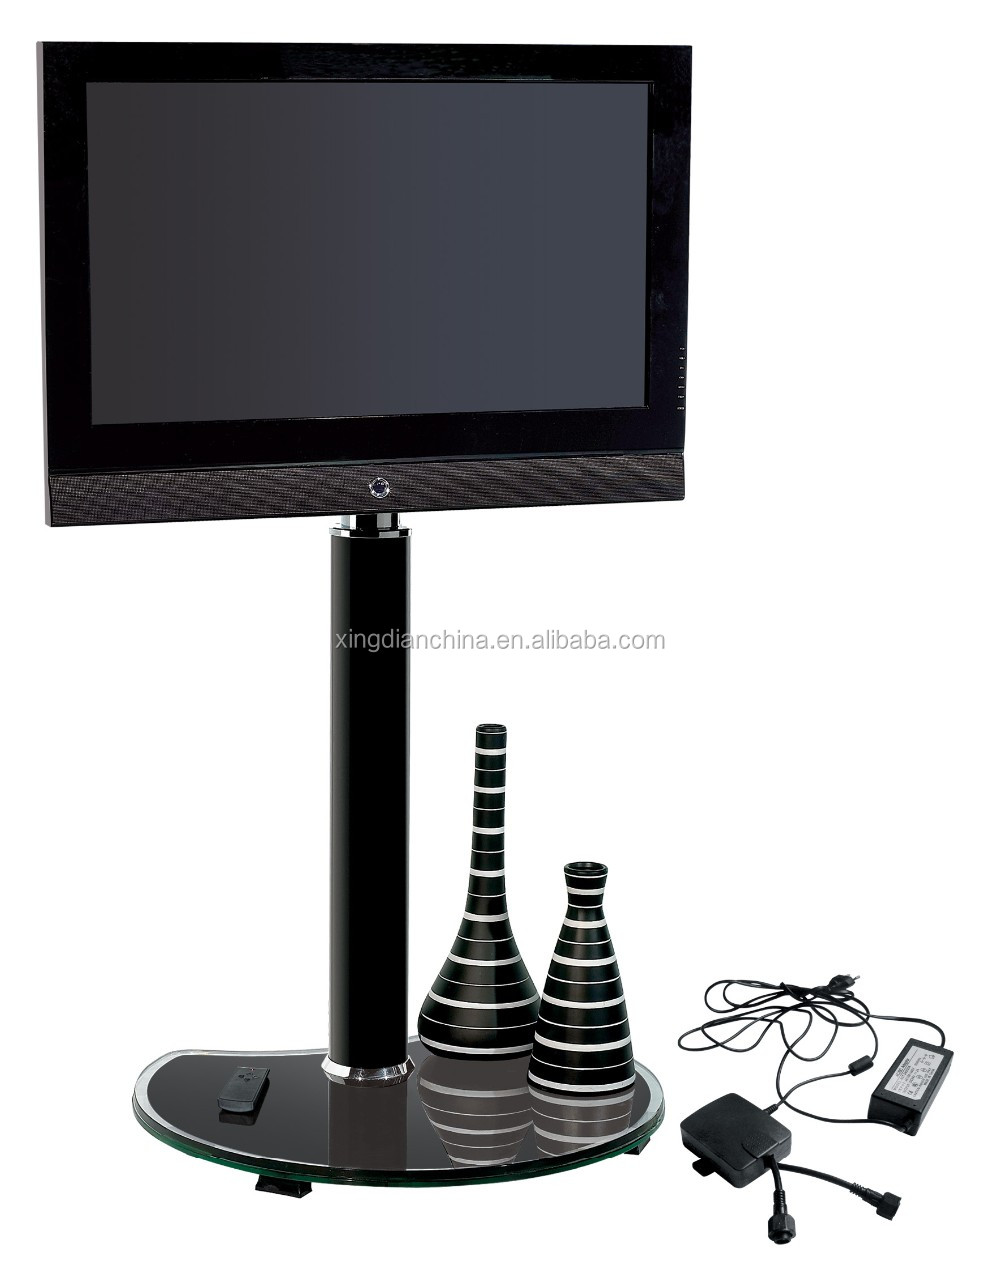 motorized lcd tv lift buy tv lift motorized tv lift. Black Bedroom Furniture Sets. Home Design Ideas